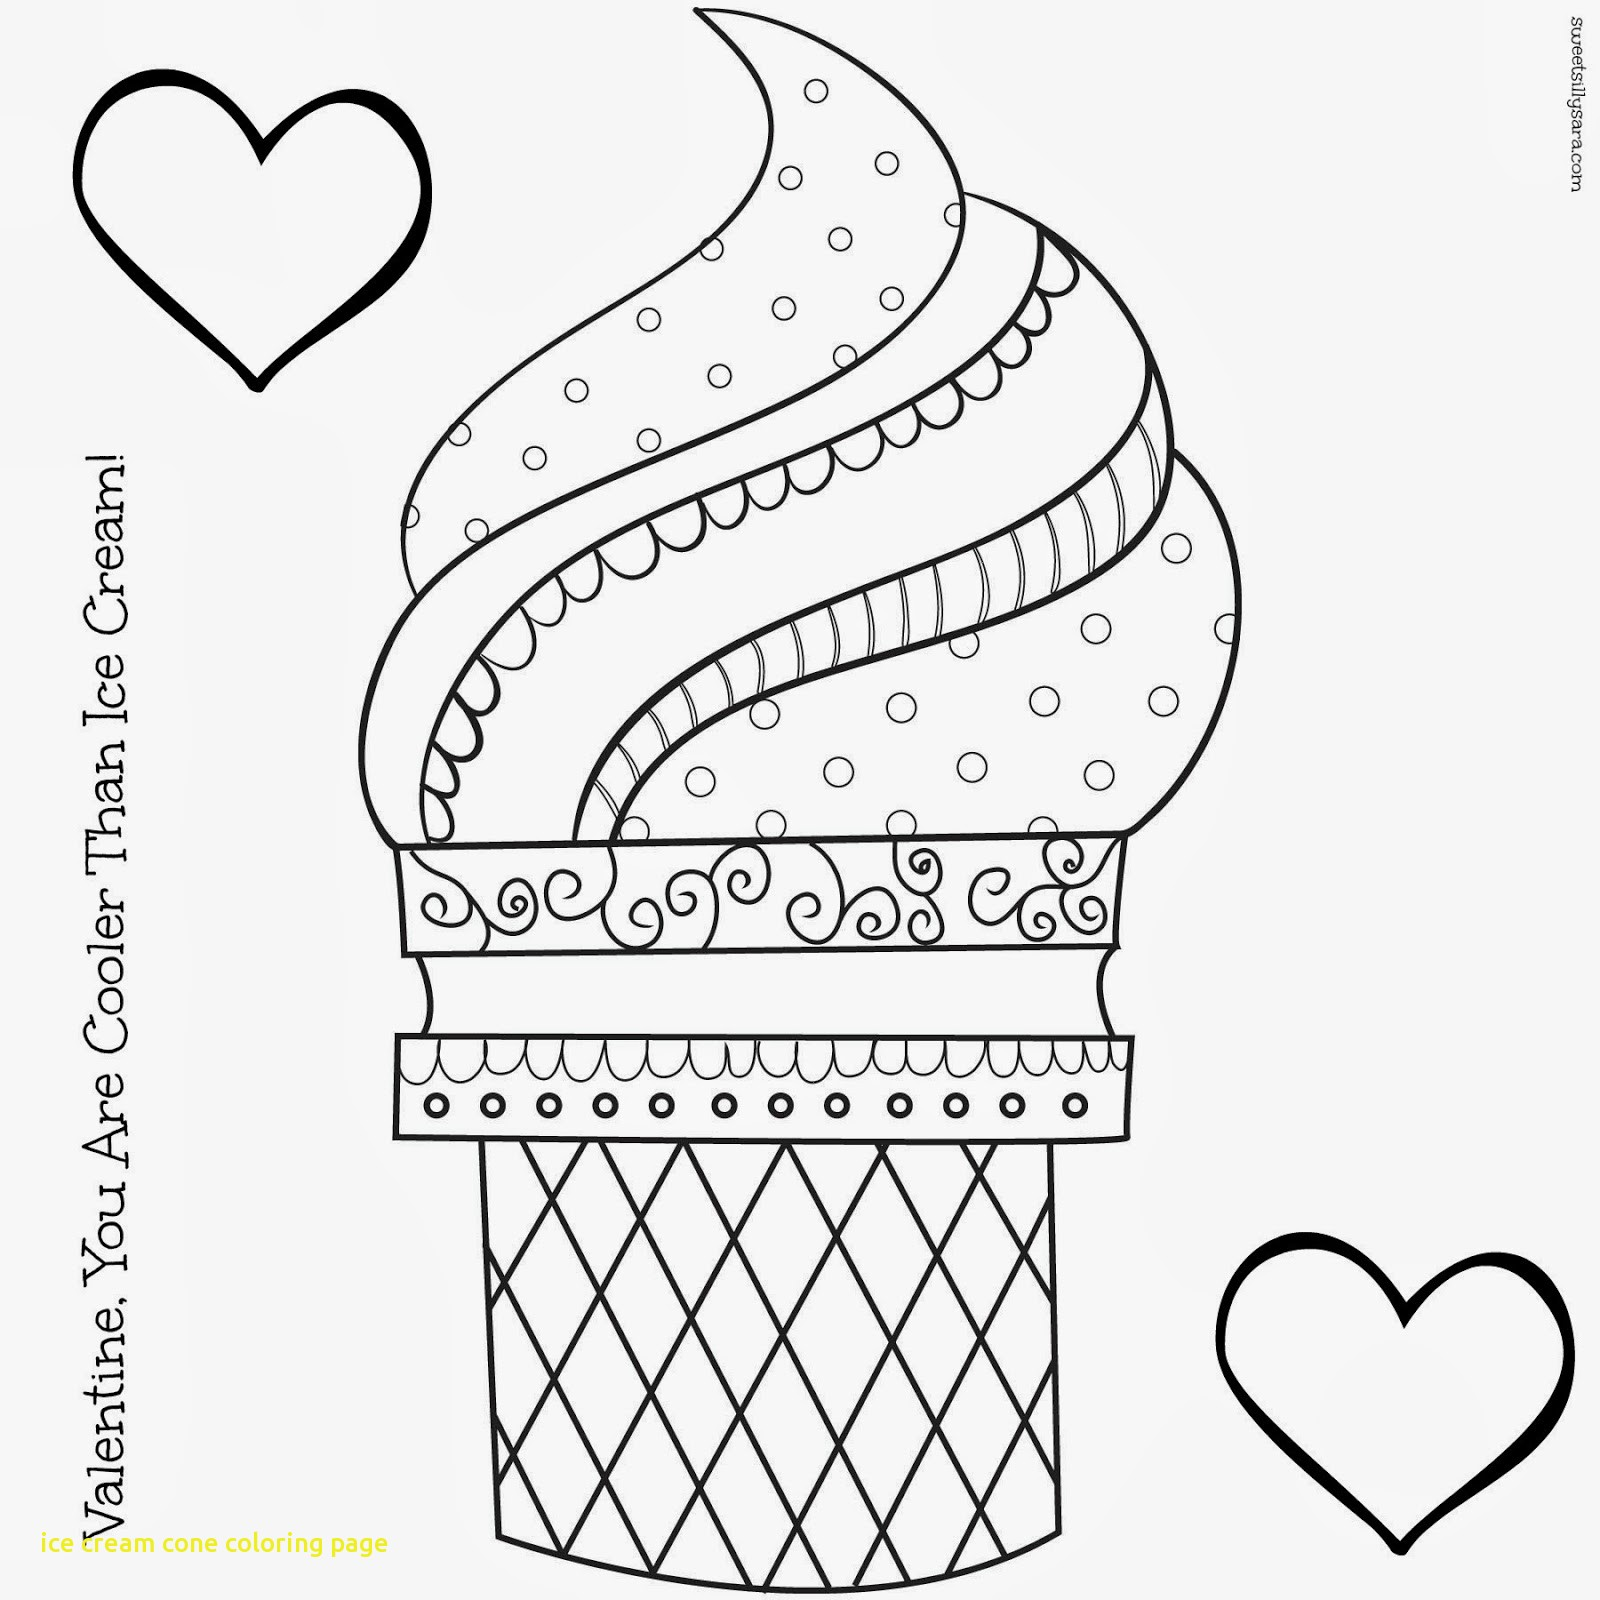 1600x1600 Ice Cream Cone Coloring Page With Melting In Summ On Summer